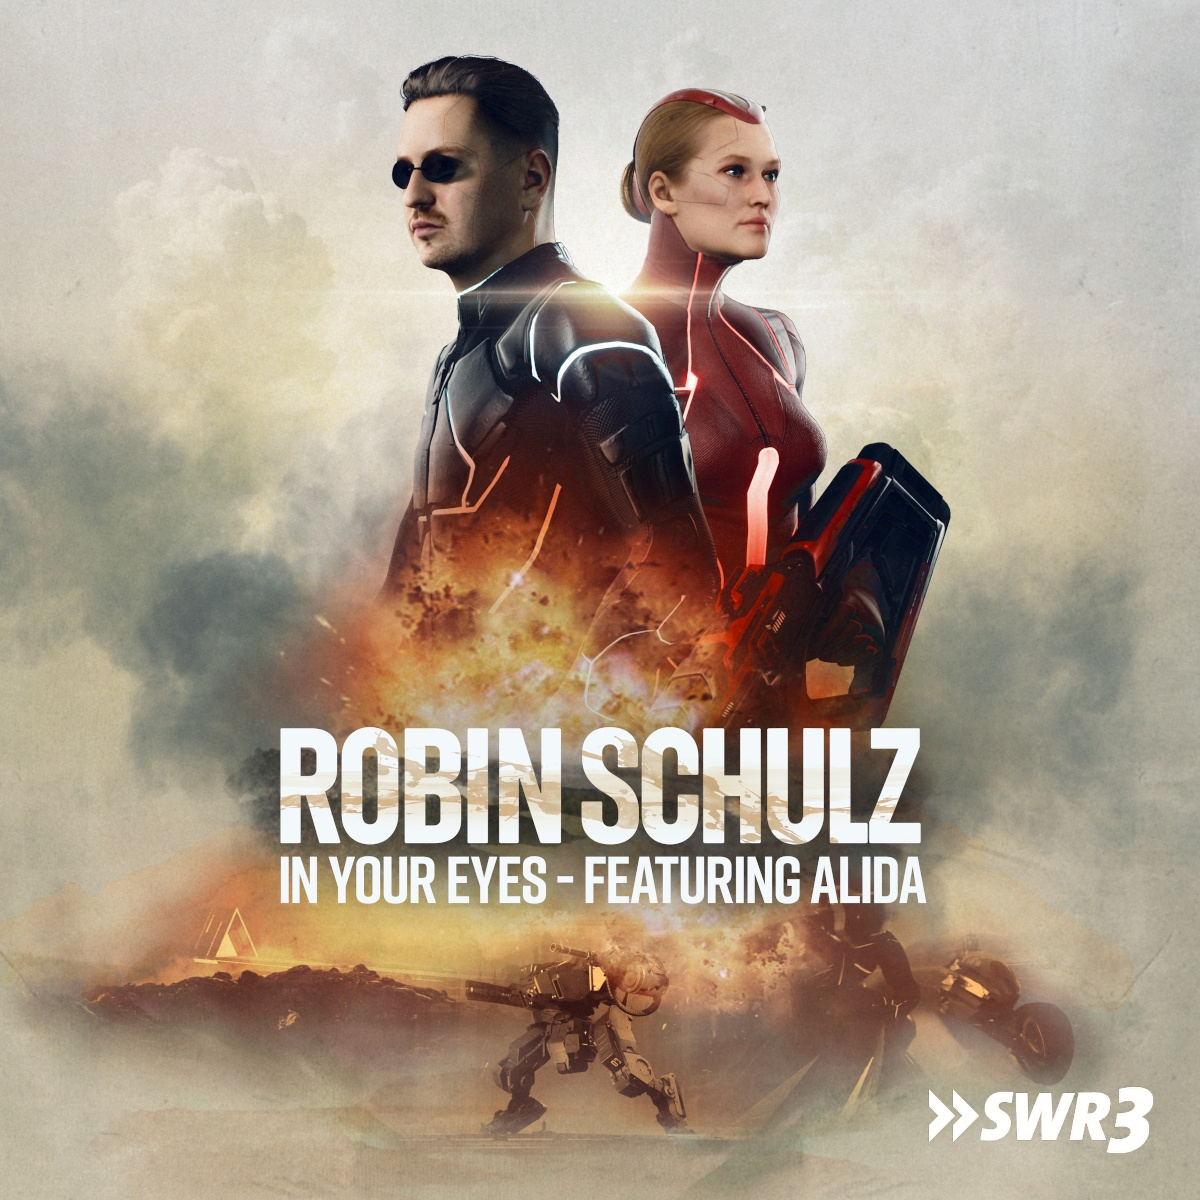 In your eyes (Foto: Robin Schulz)